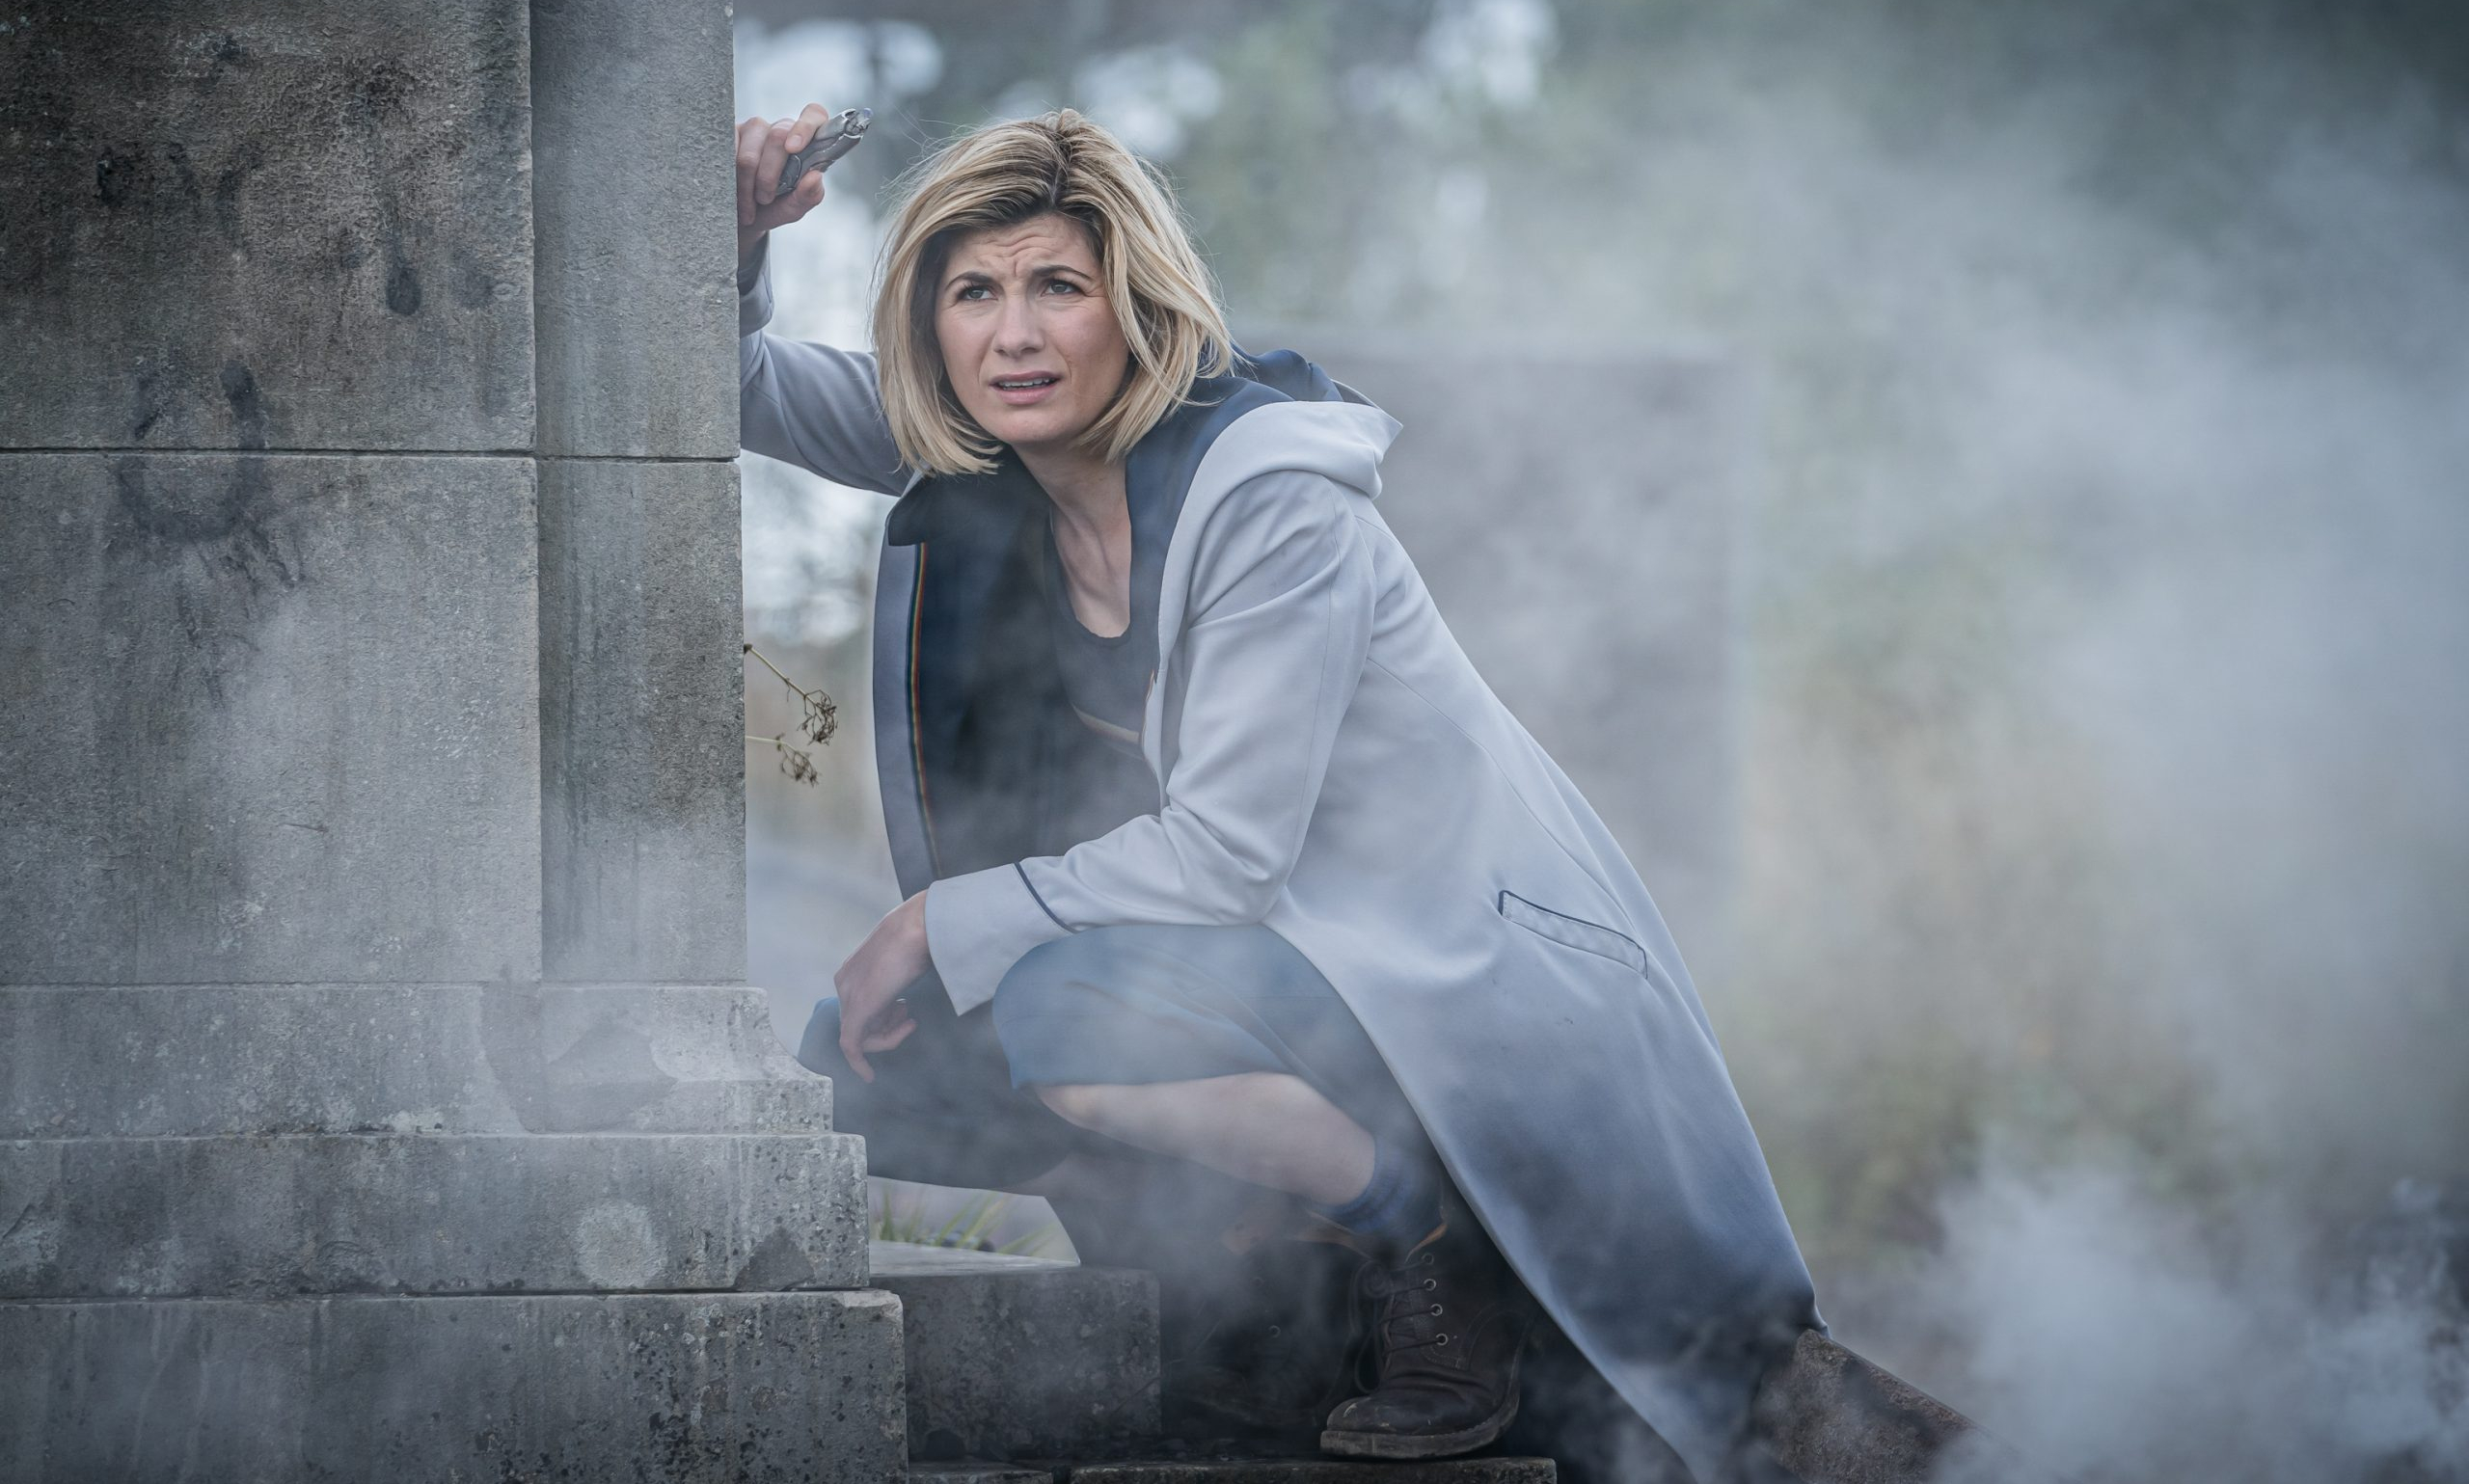 doctor who review ascension of the cybermen jodie whittaker chris chibnall jamie magnus stone cybermen ashad timeless child brendan